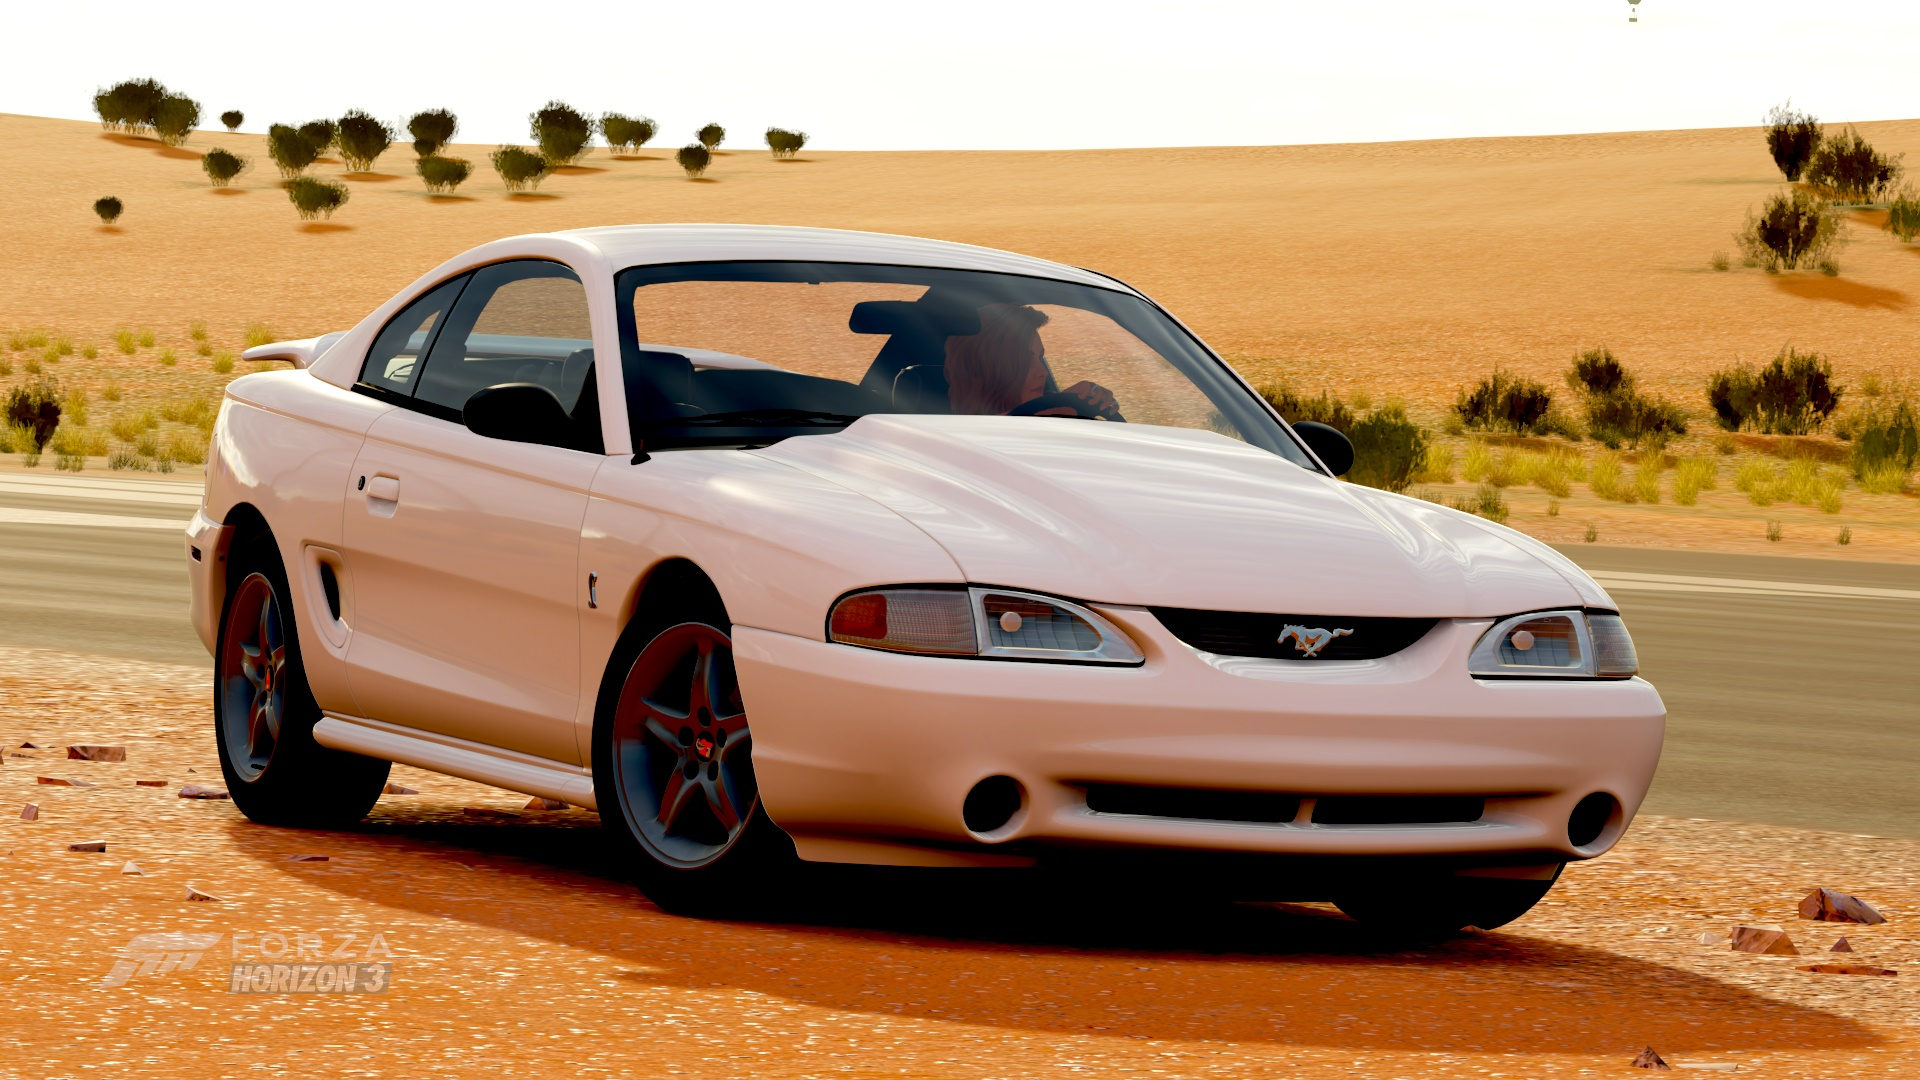 hight resolution of 1995 ford svt cobra r photo by badriver